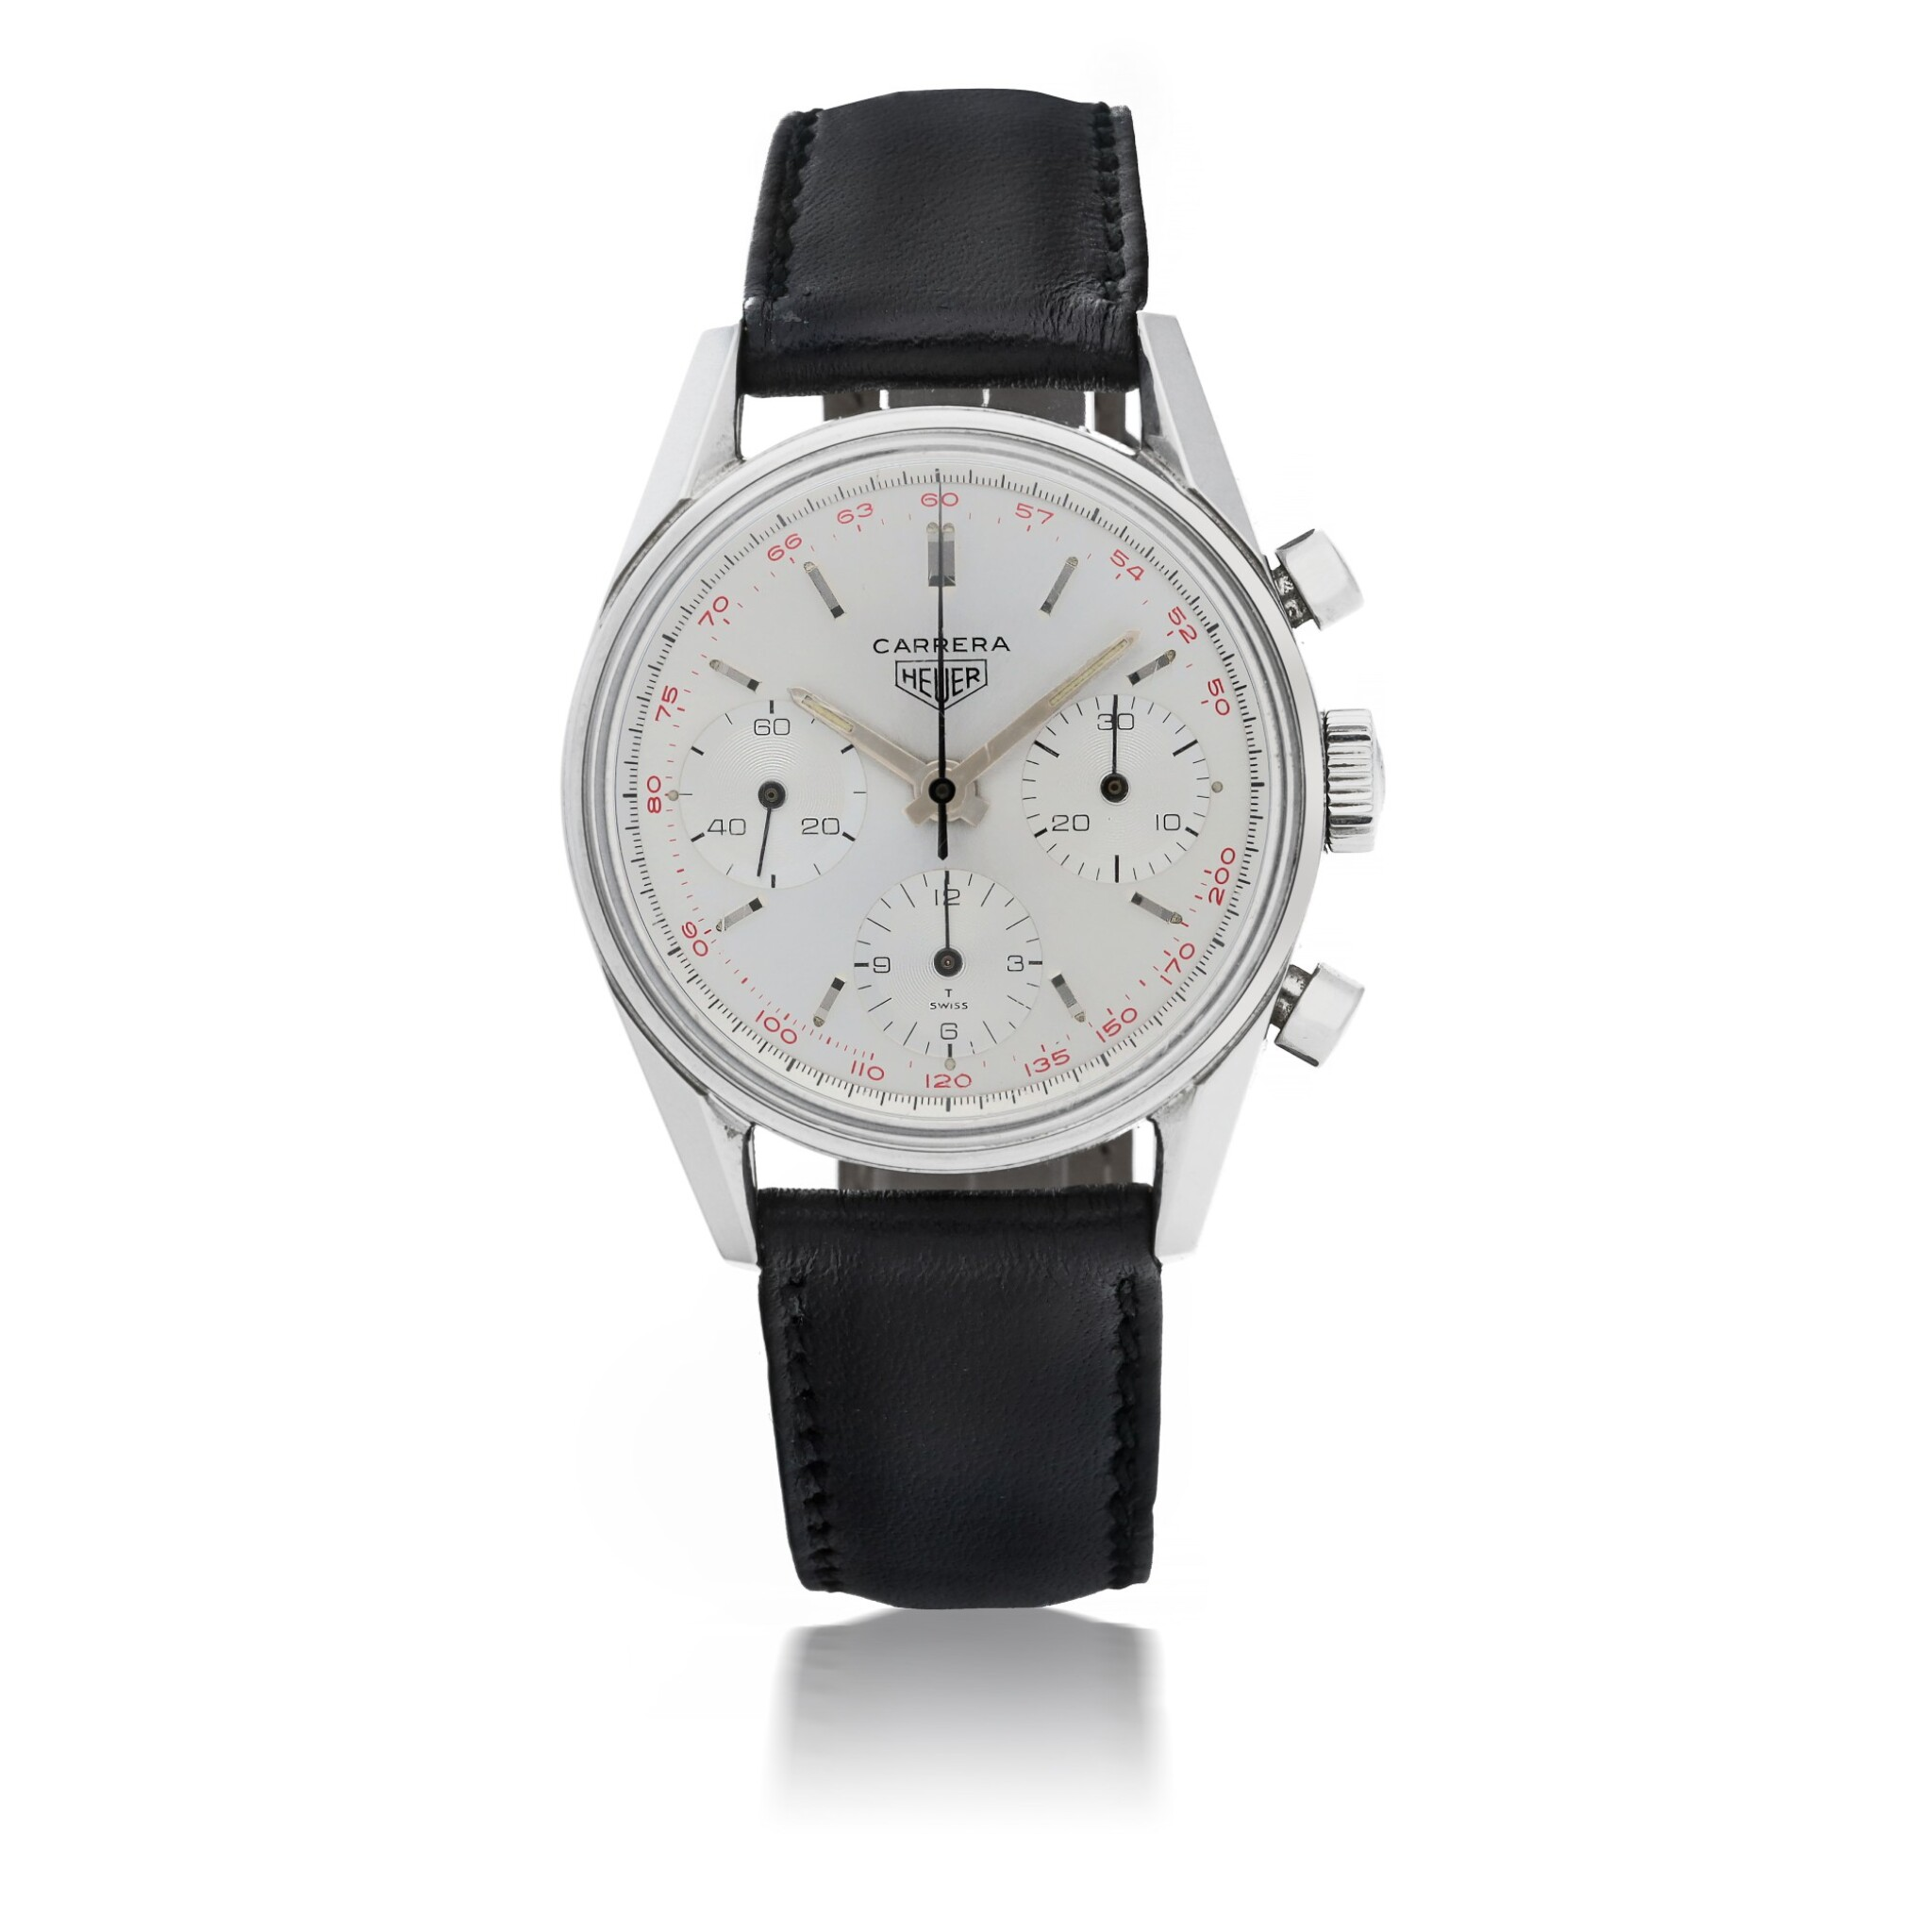 View full screen - View 1 of Lot 48. HEUER | CARRERA 12, REF 2447T STAINLESS STEEL CHRONOGRAPH WRISTWATCH  CIRCA 1965.